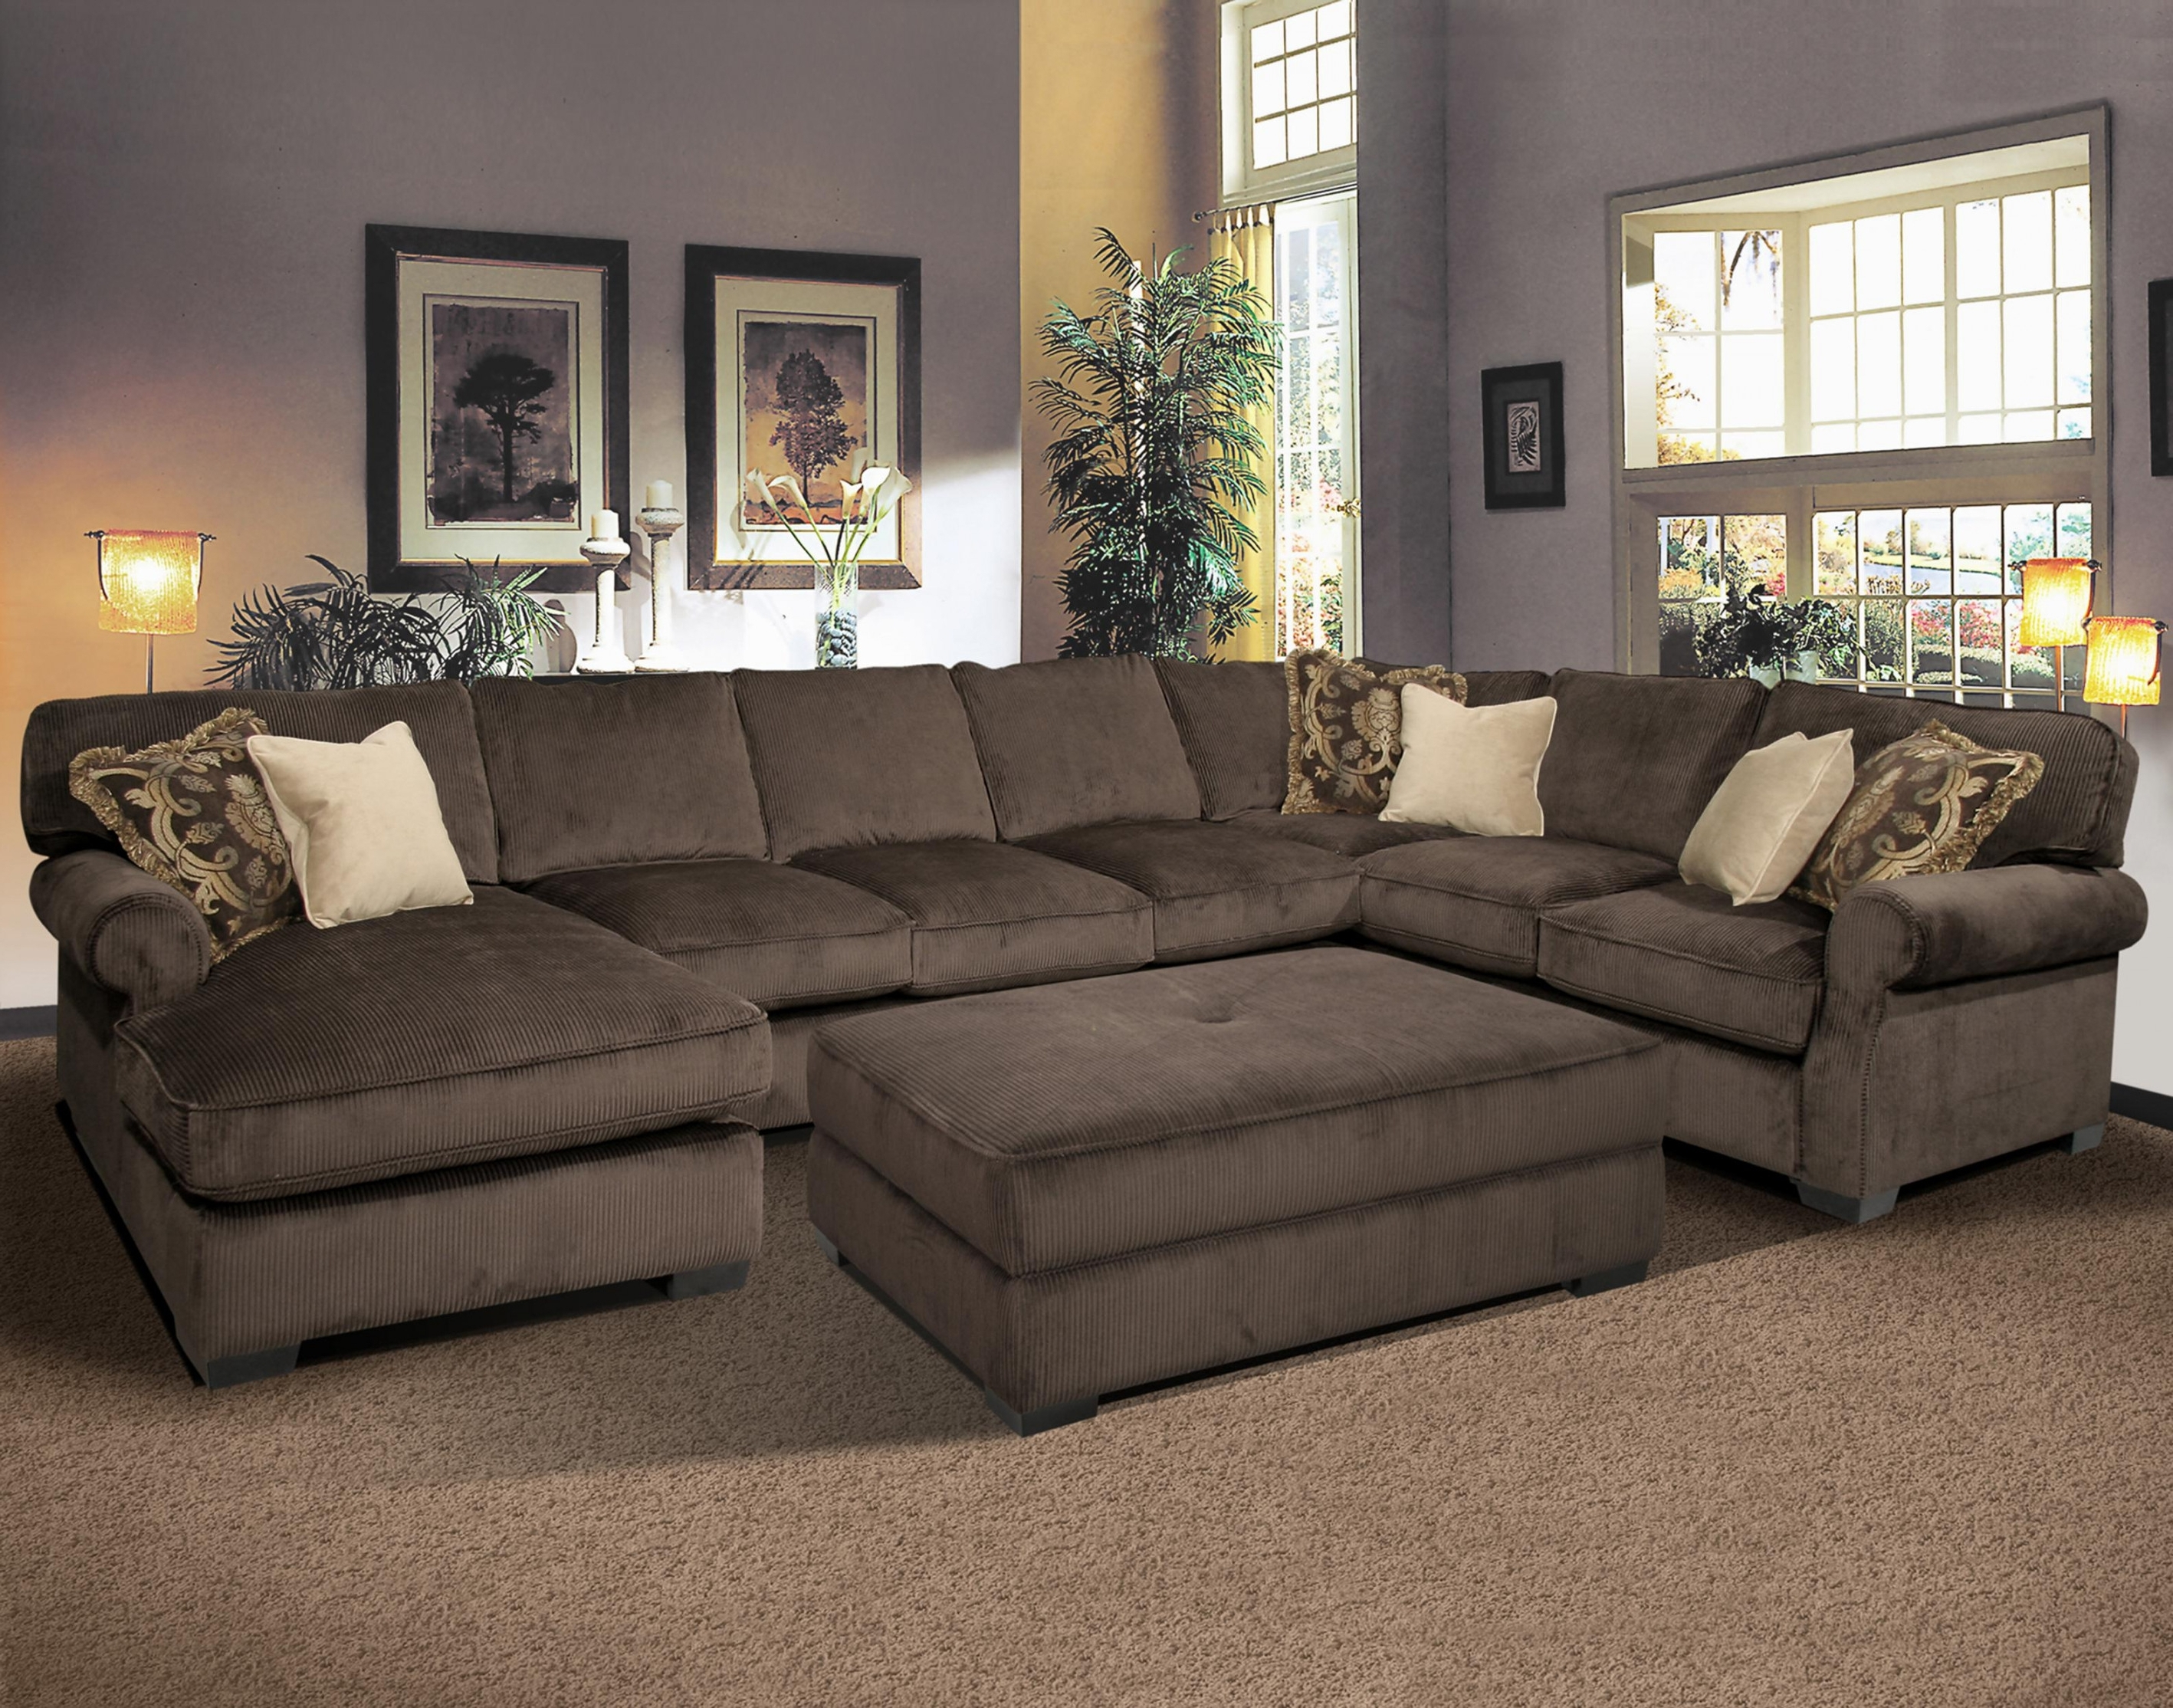 Oversized Sectional Sofas For 2017 Awesome Oversized Sectional Sofa On Grand Island Large 7 Seat (View 6 of 15)